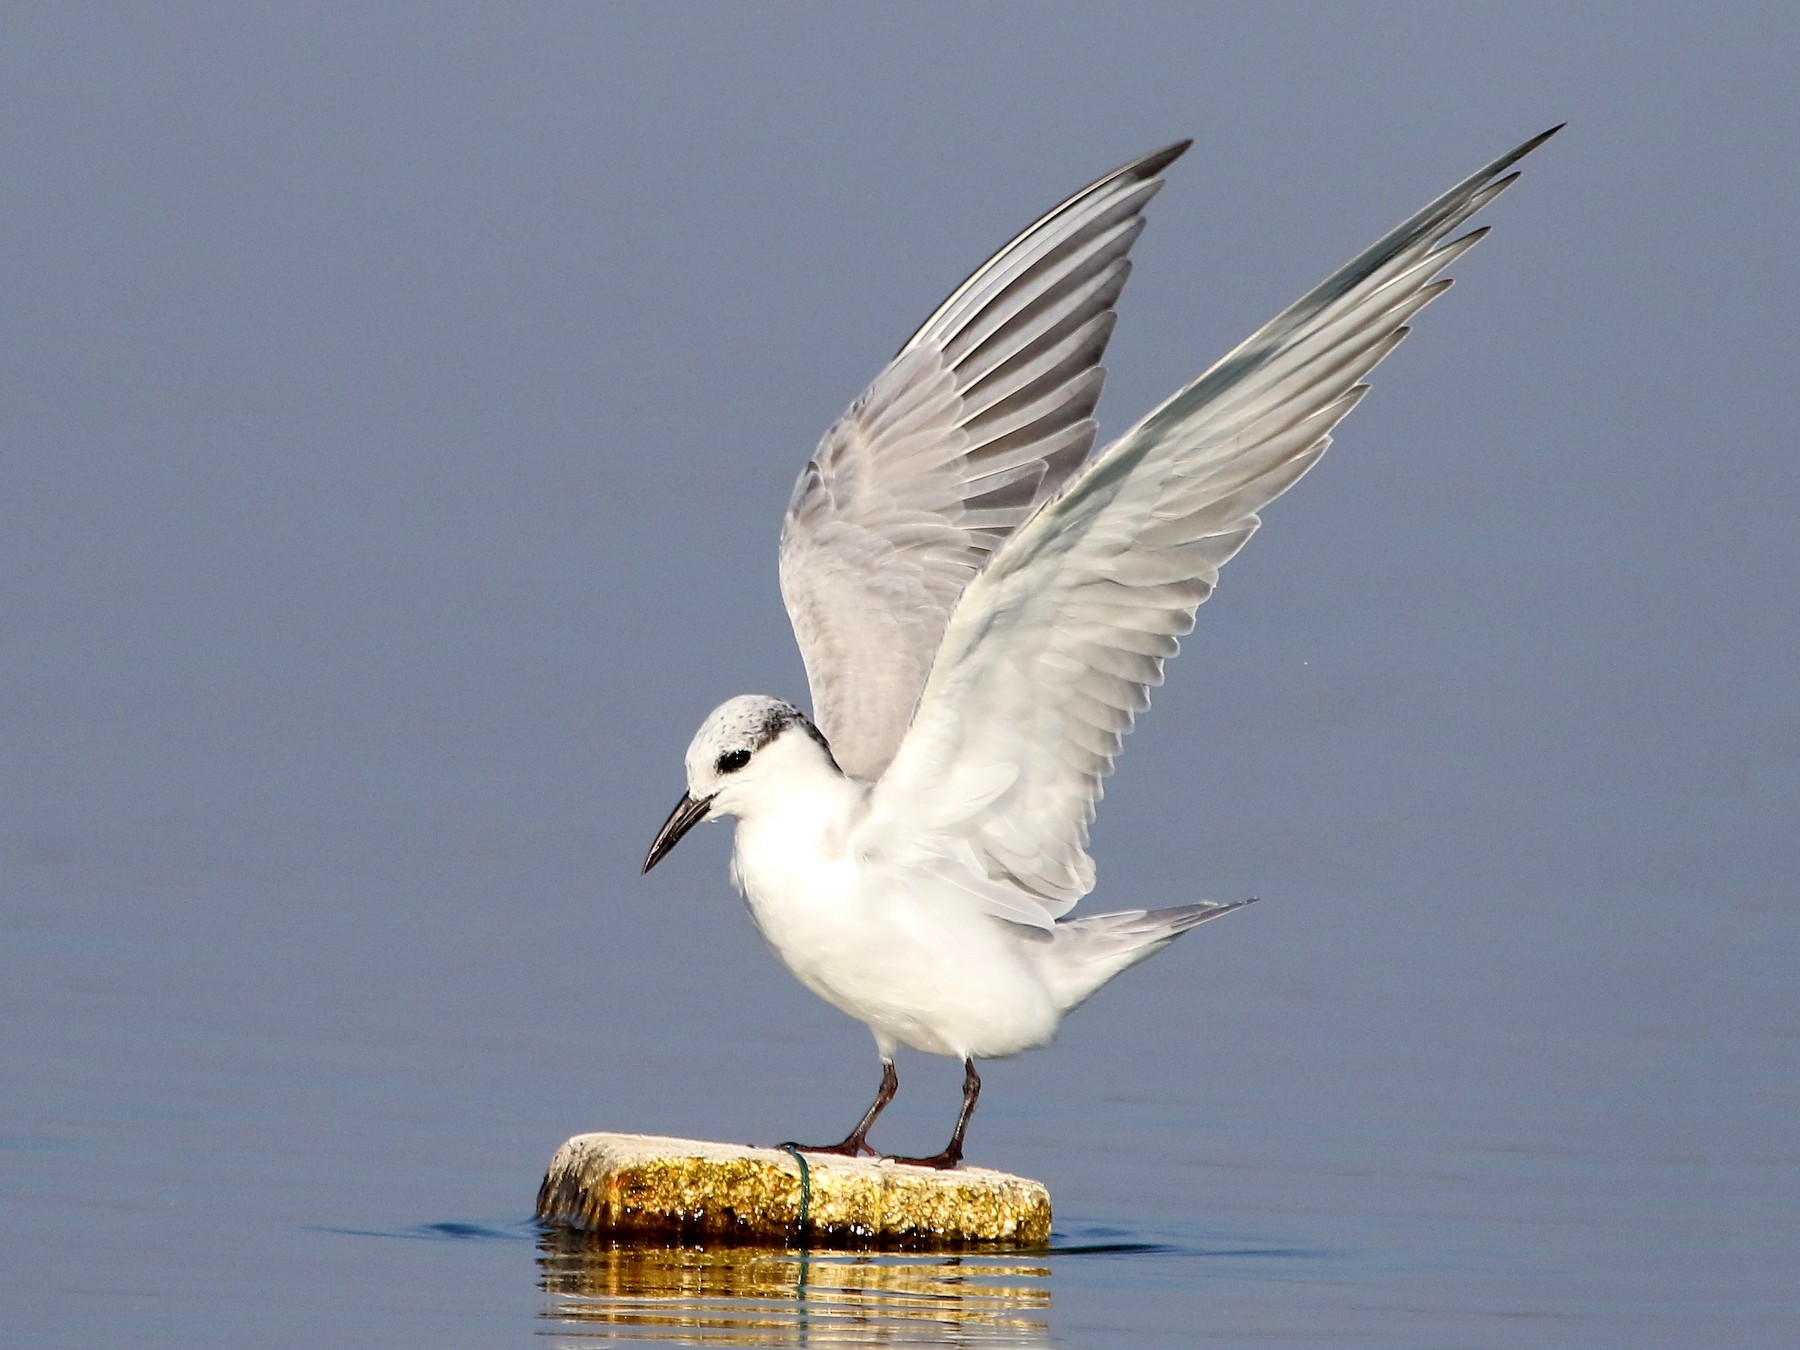 Whiskered Tern - Sneha Gupta